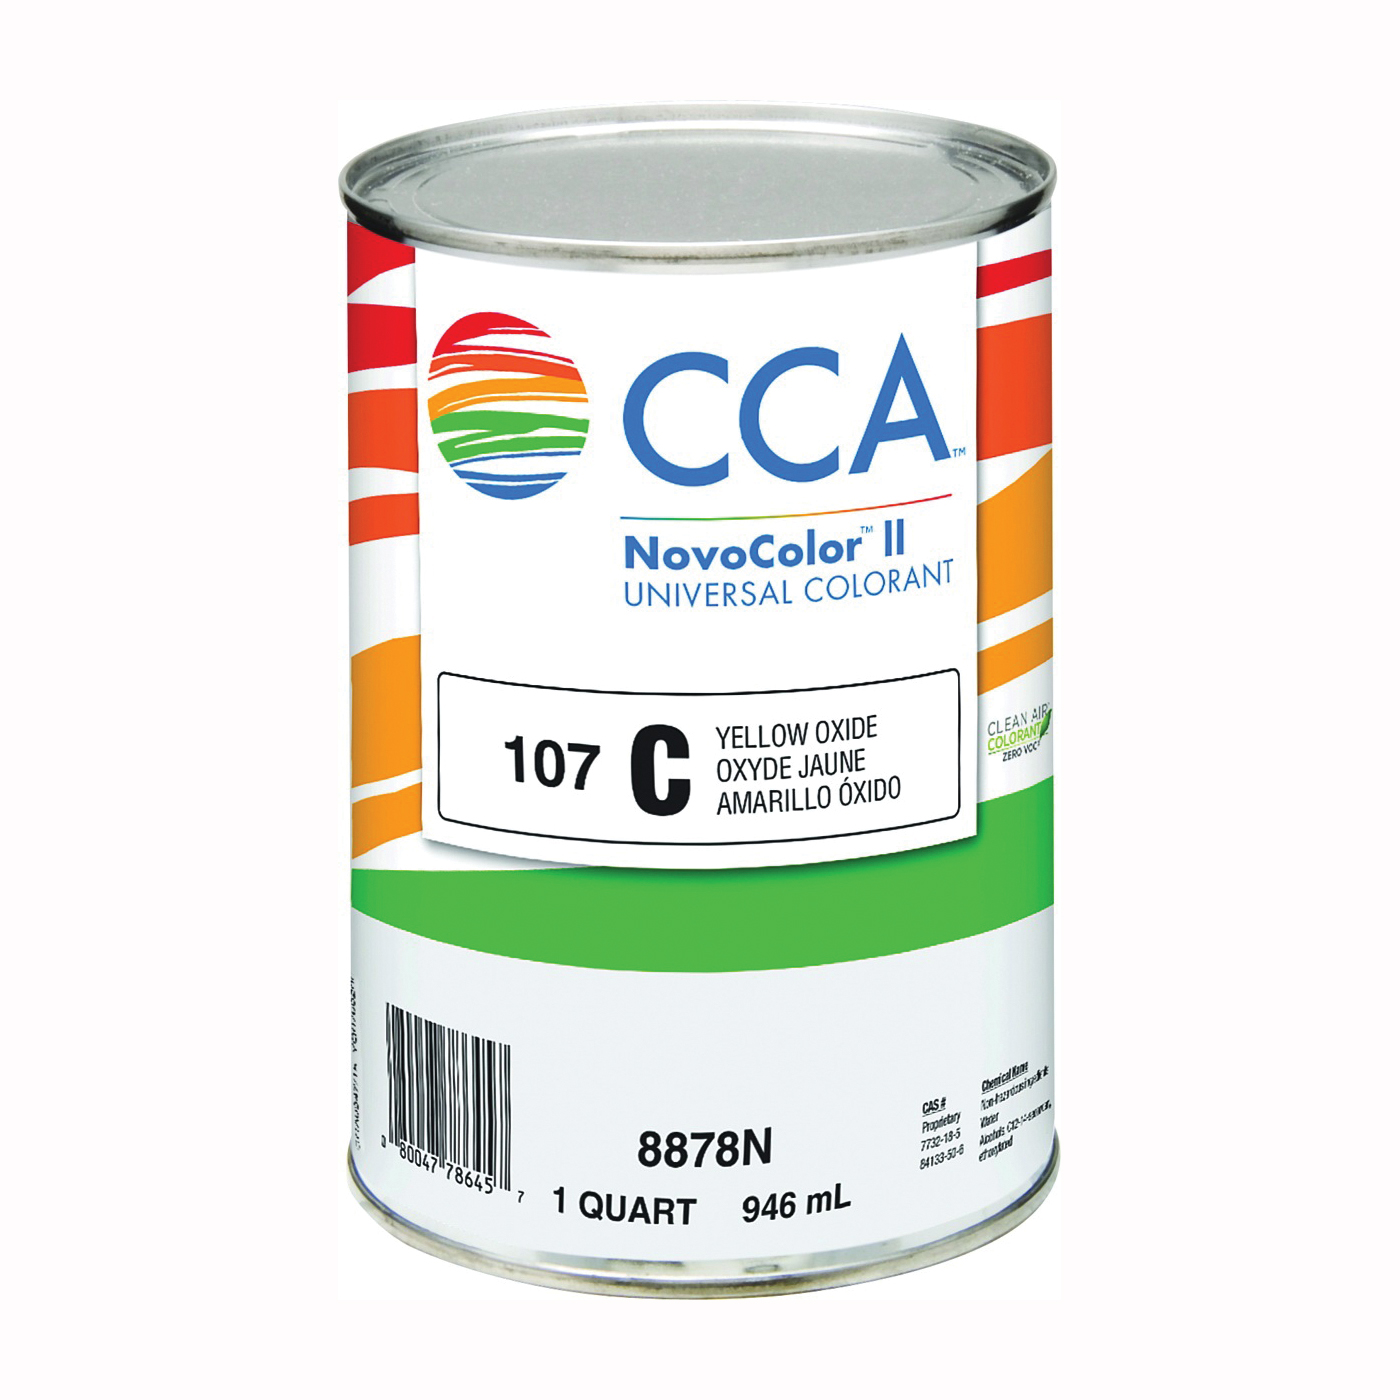 Picture of CCA NovoColor II 8878N Universal Colorant, Yellow Oxide, Liquid, 1 qt Package